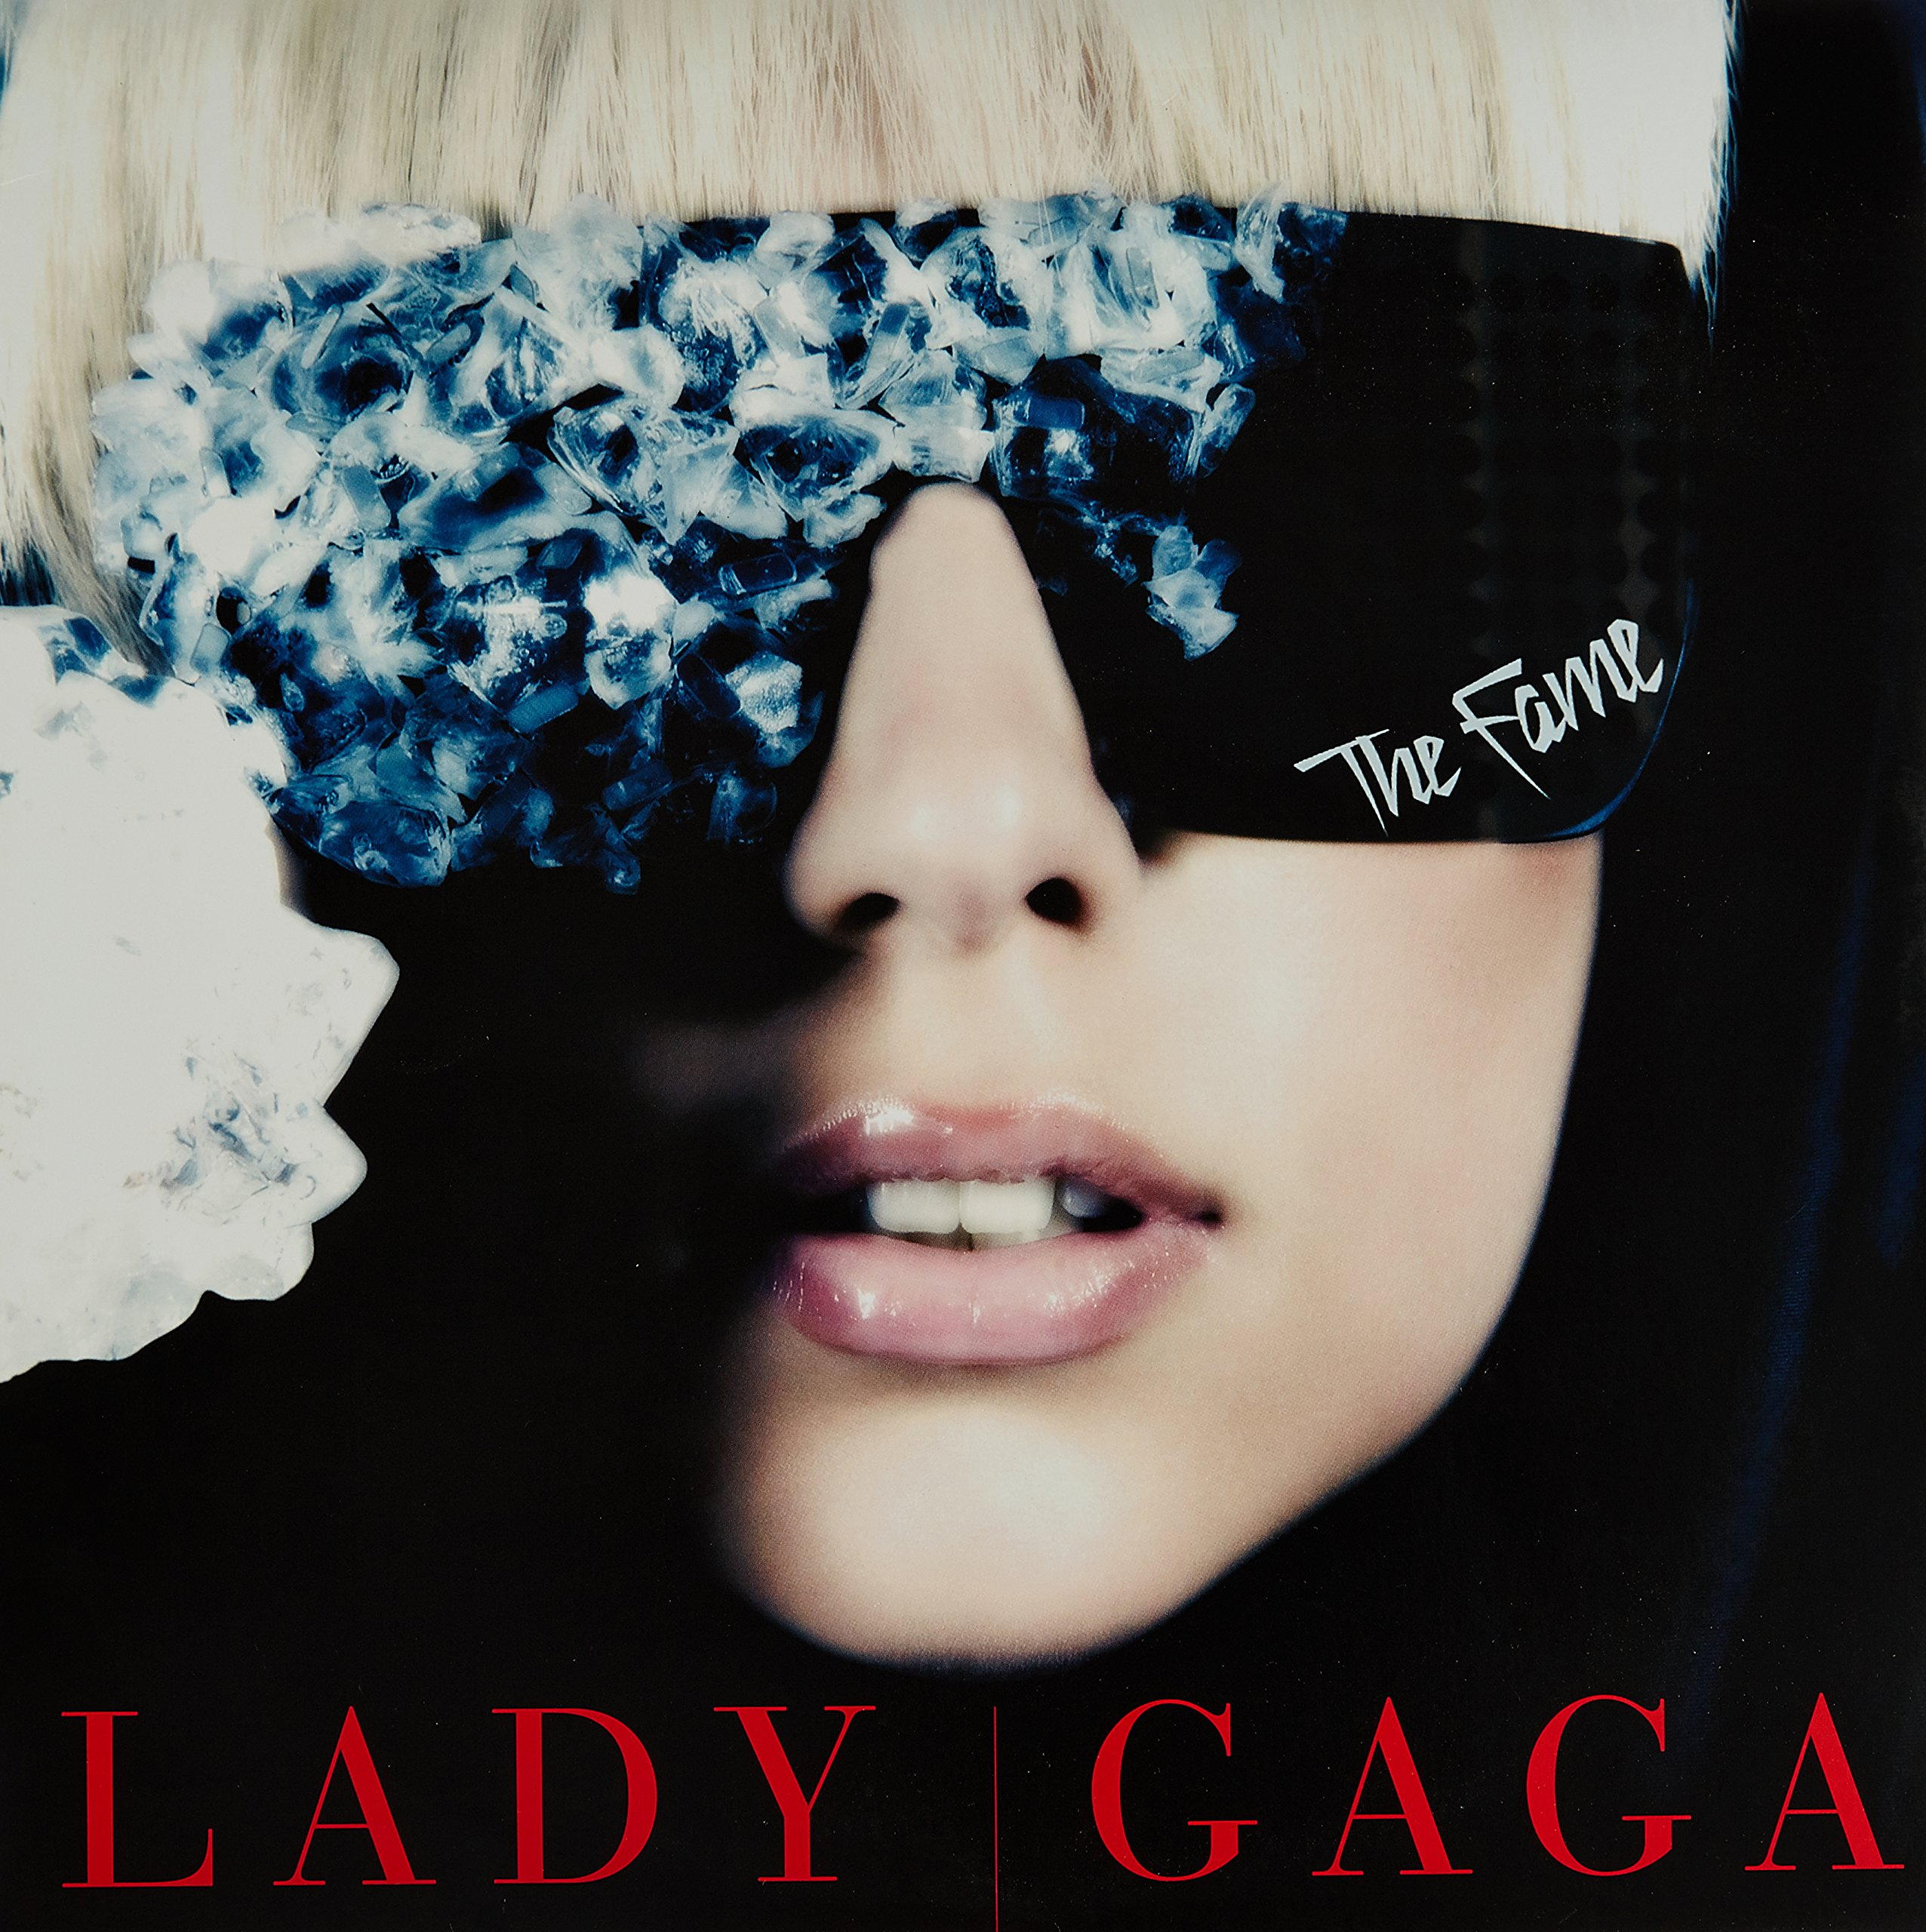 Lady Gaga – The Fame Monster (2009) [FLAC]